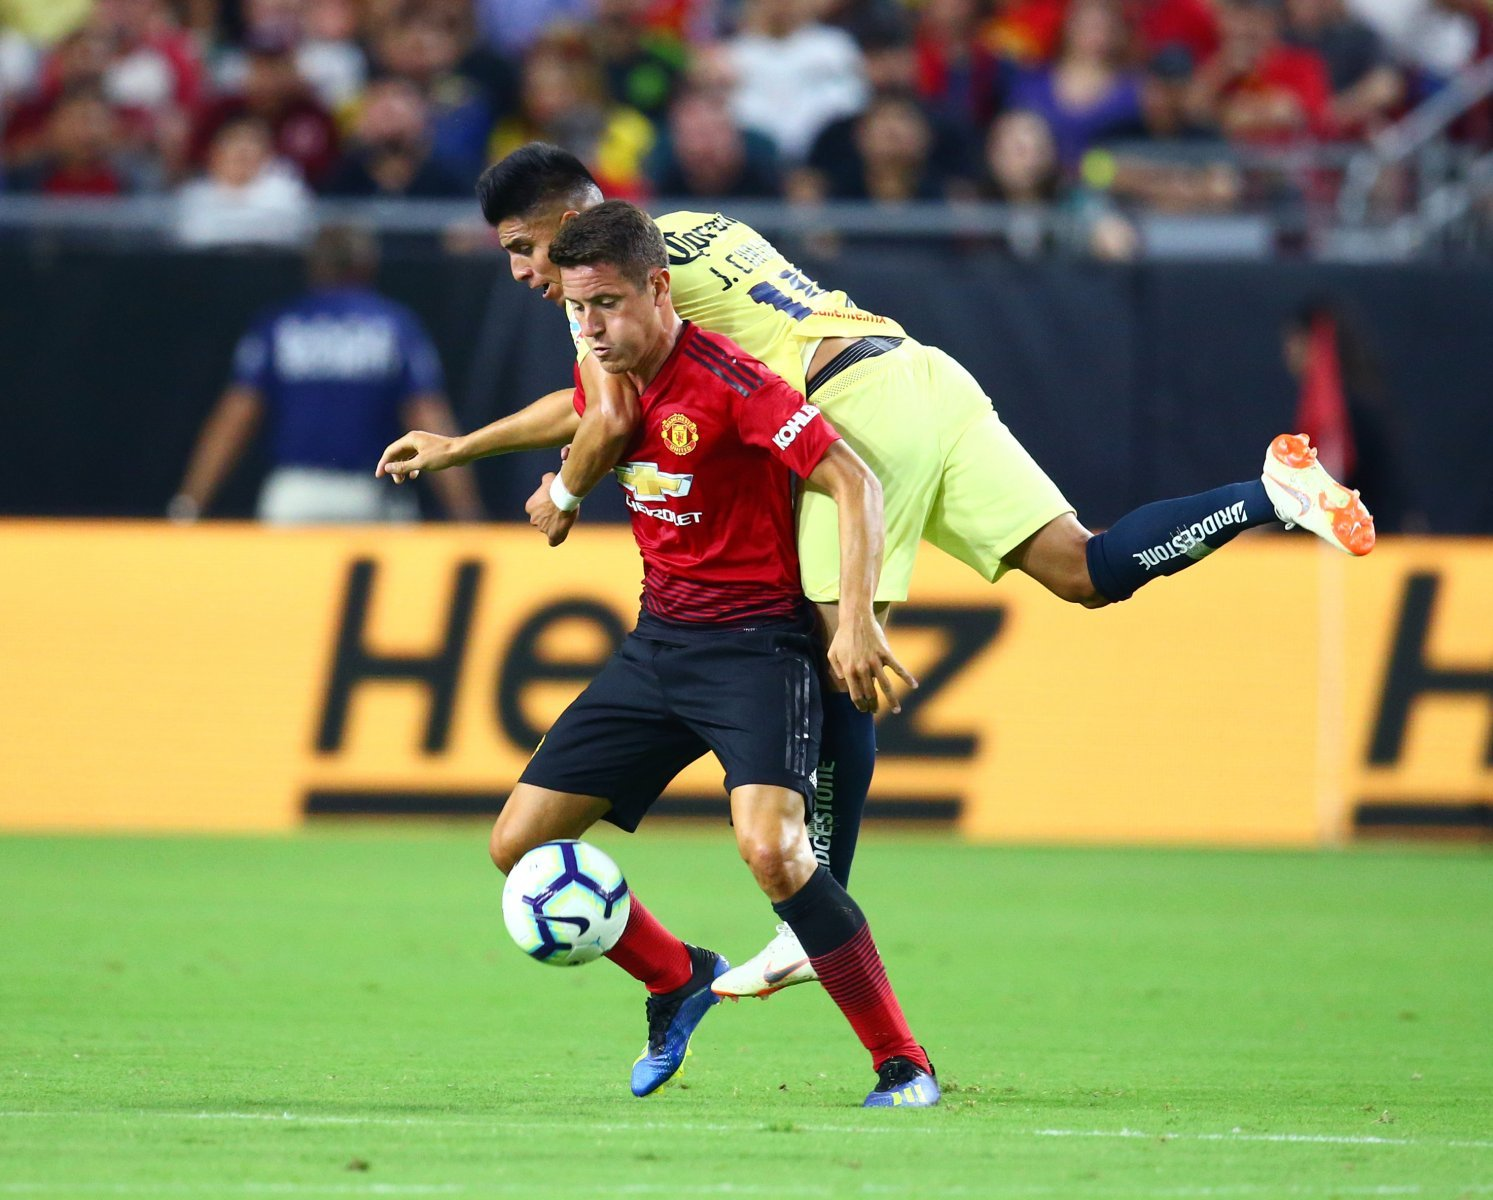 Manchester United should move Herrera on, not offer him a new contract